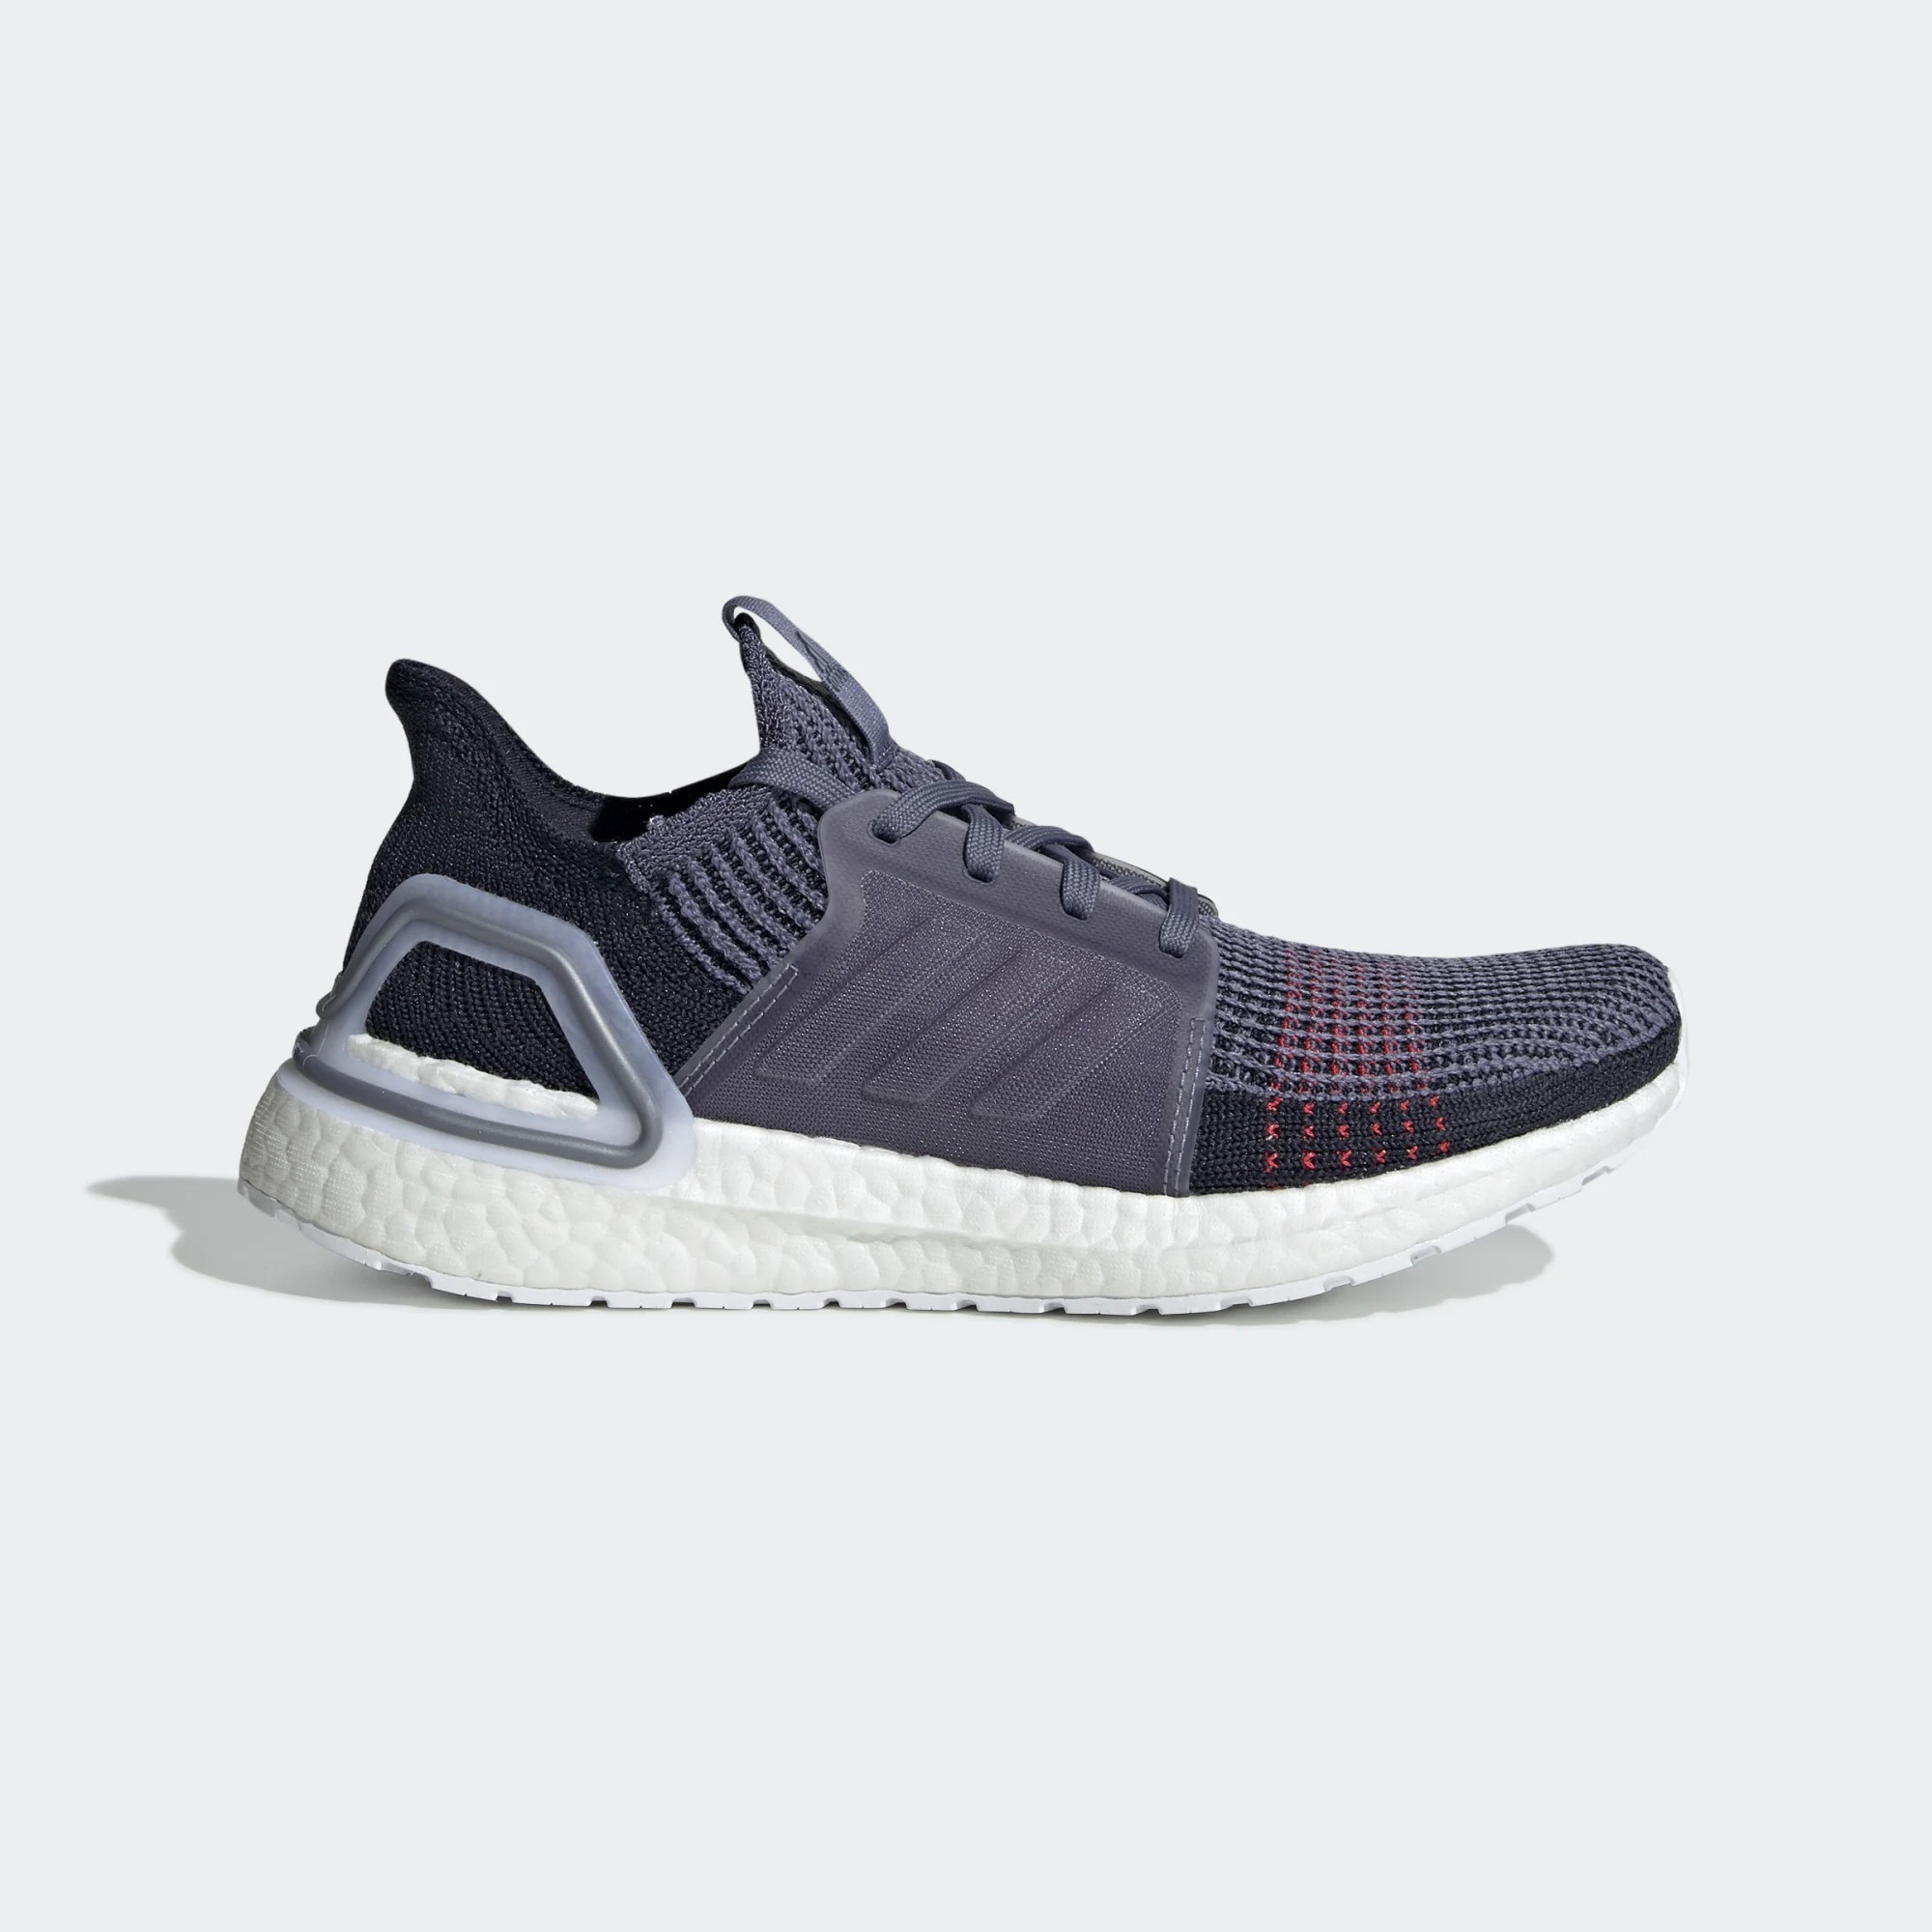 adidas Women's Ultraboost 19 Running Shoes Blue D96863